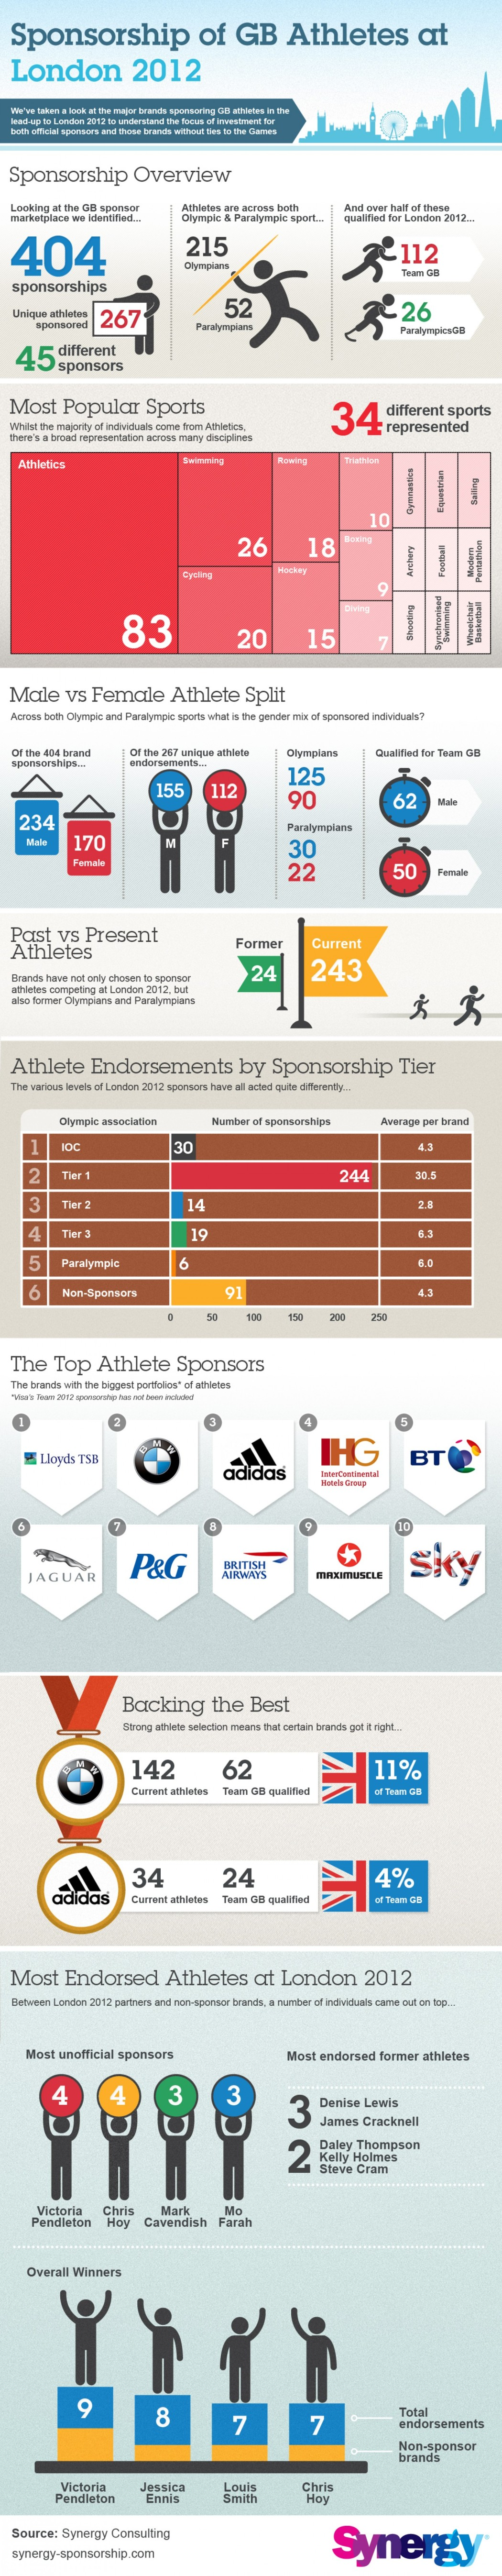 14. Sponsorship of GB Athletes at London 2012